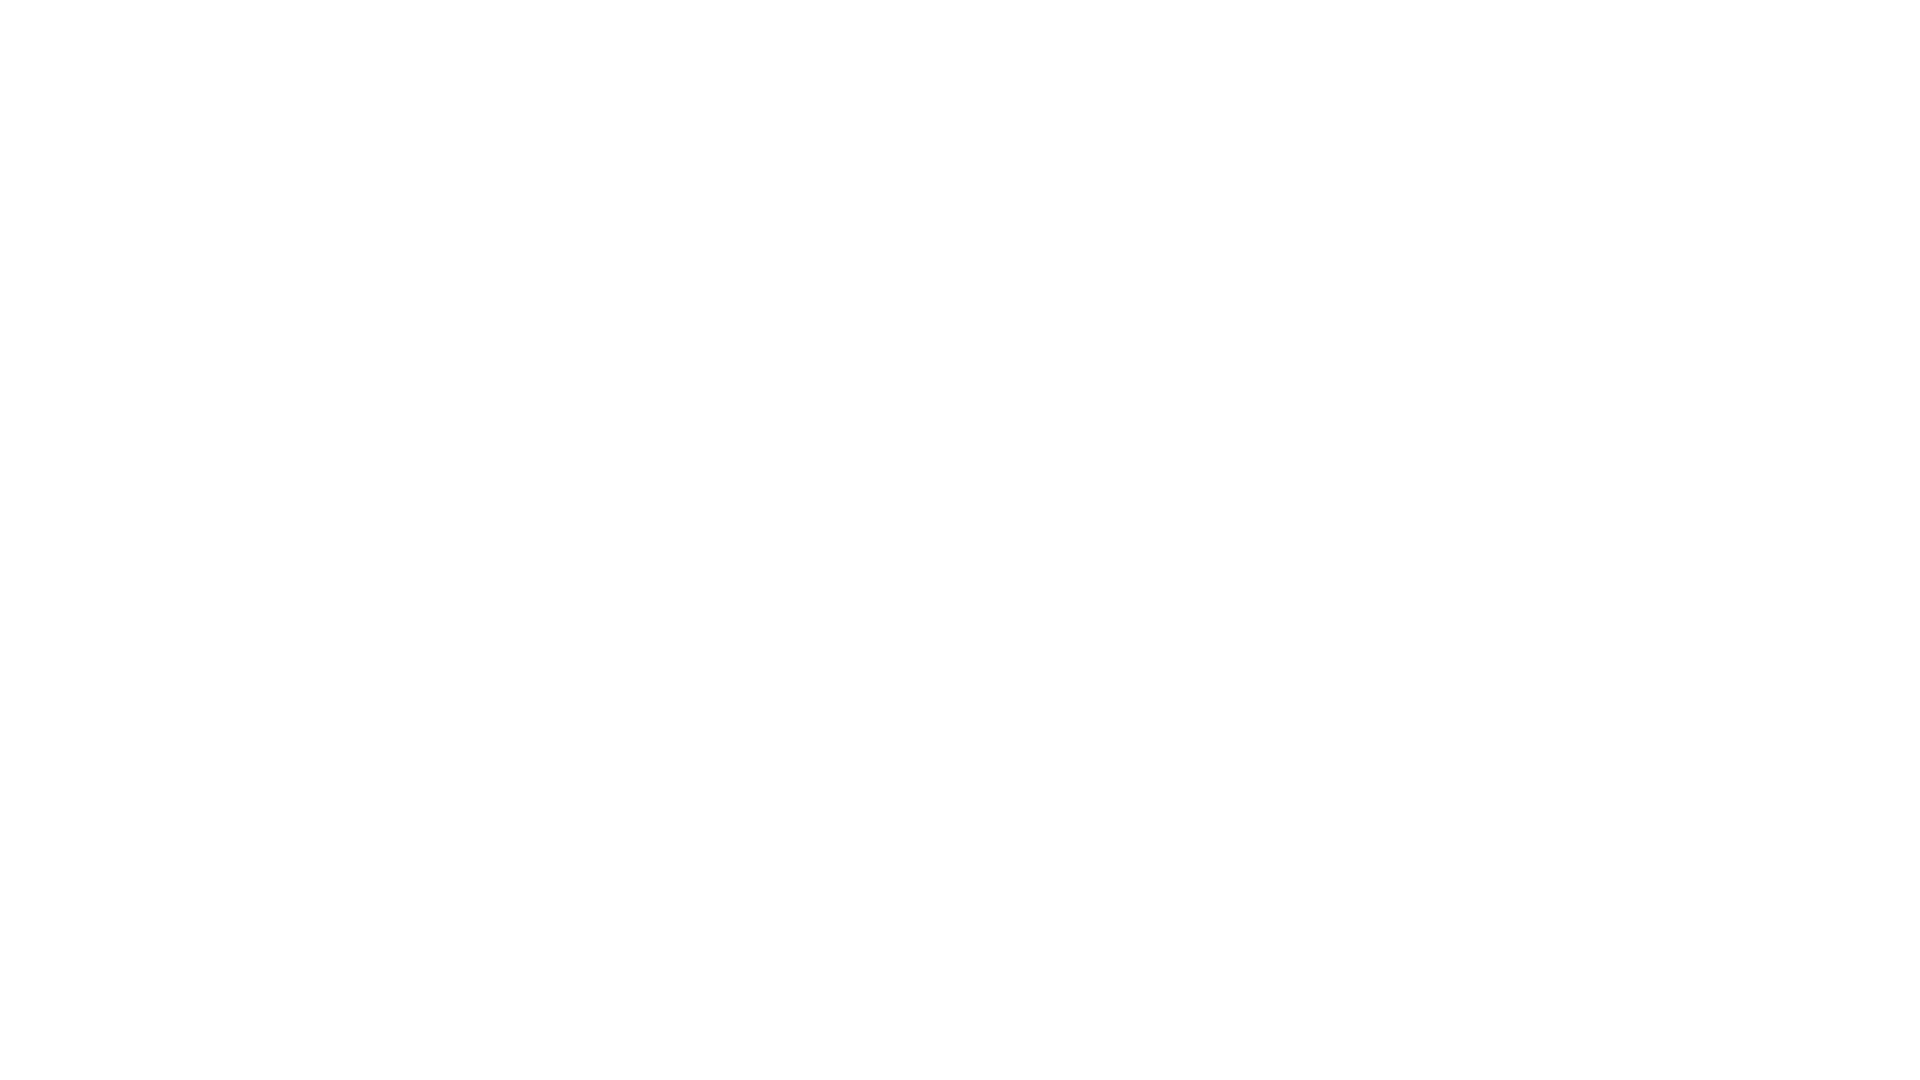 EVENTS INTRO (1).png